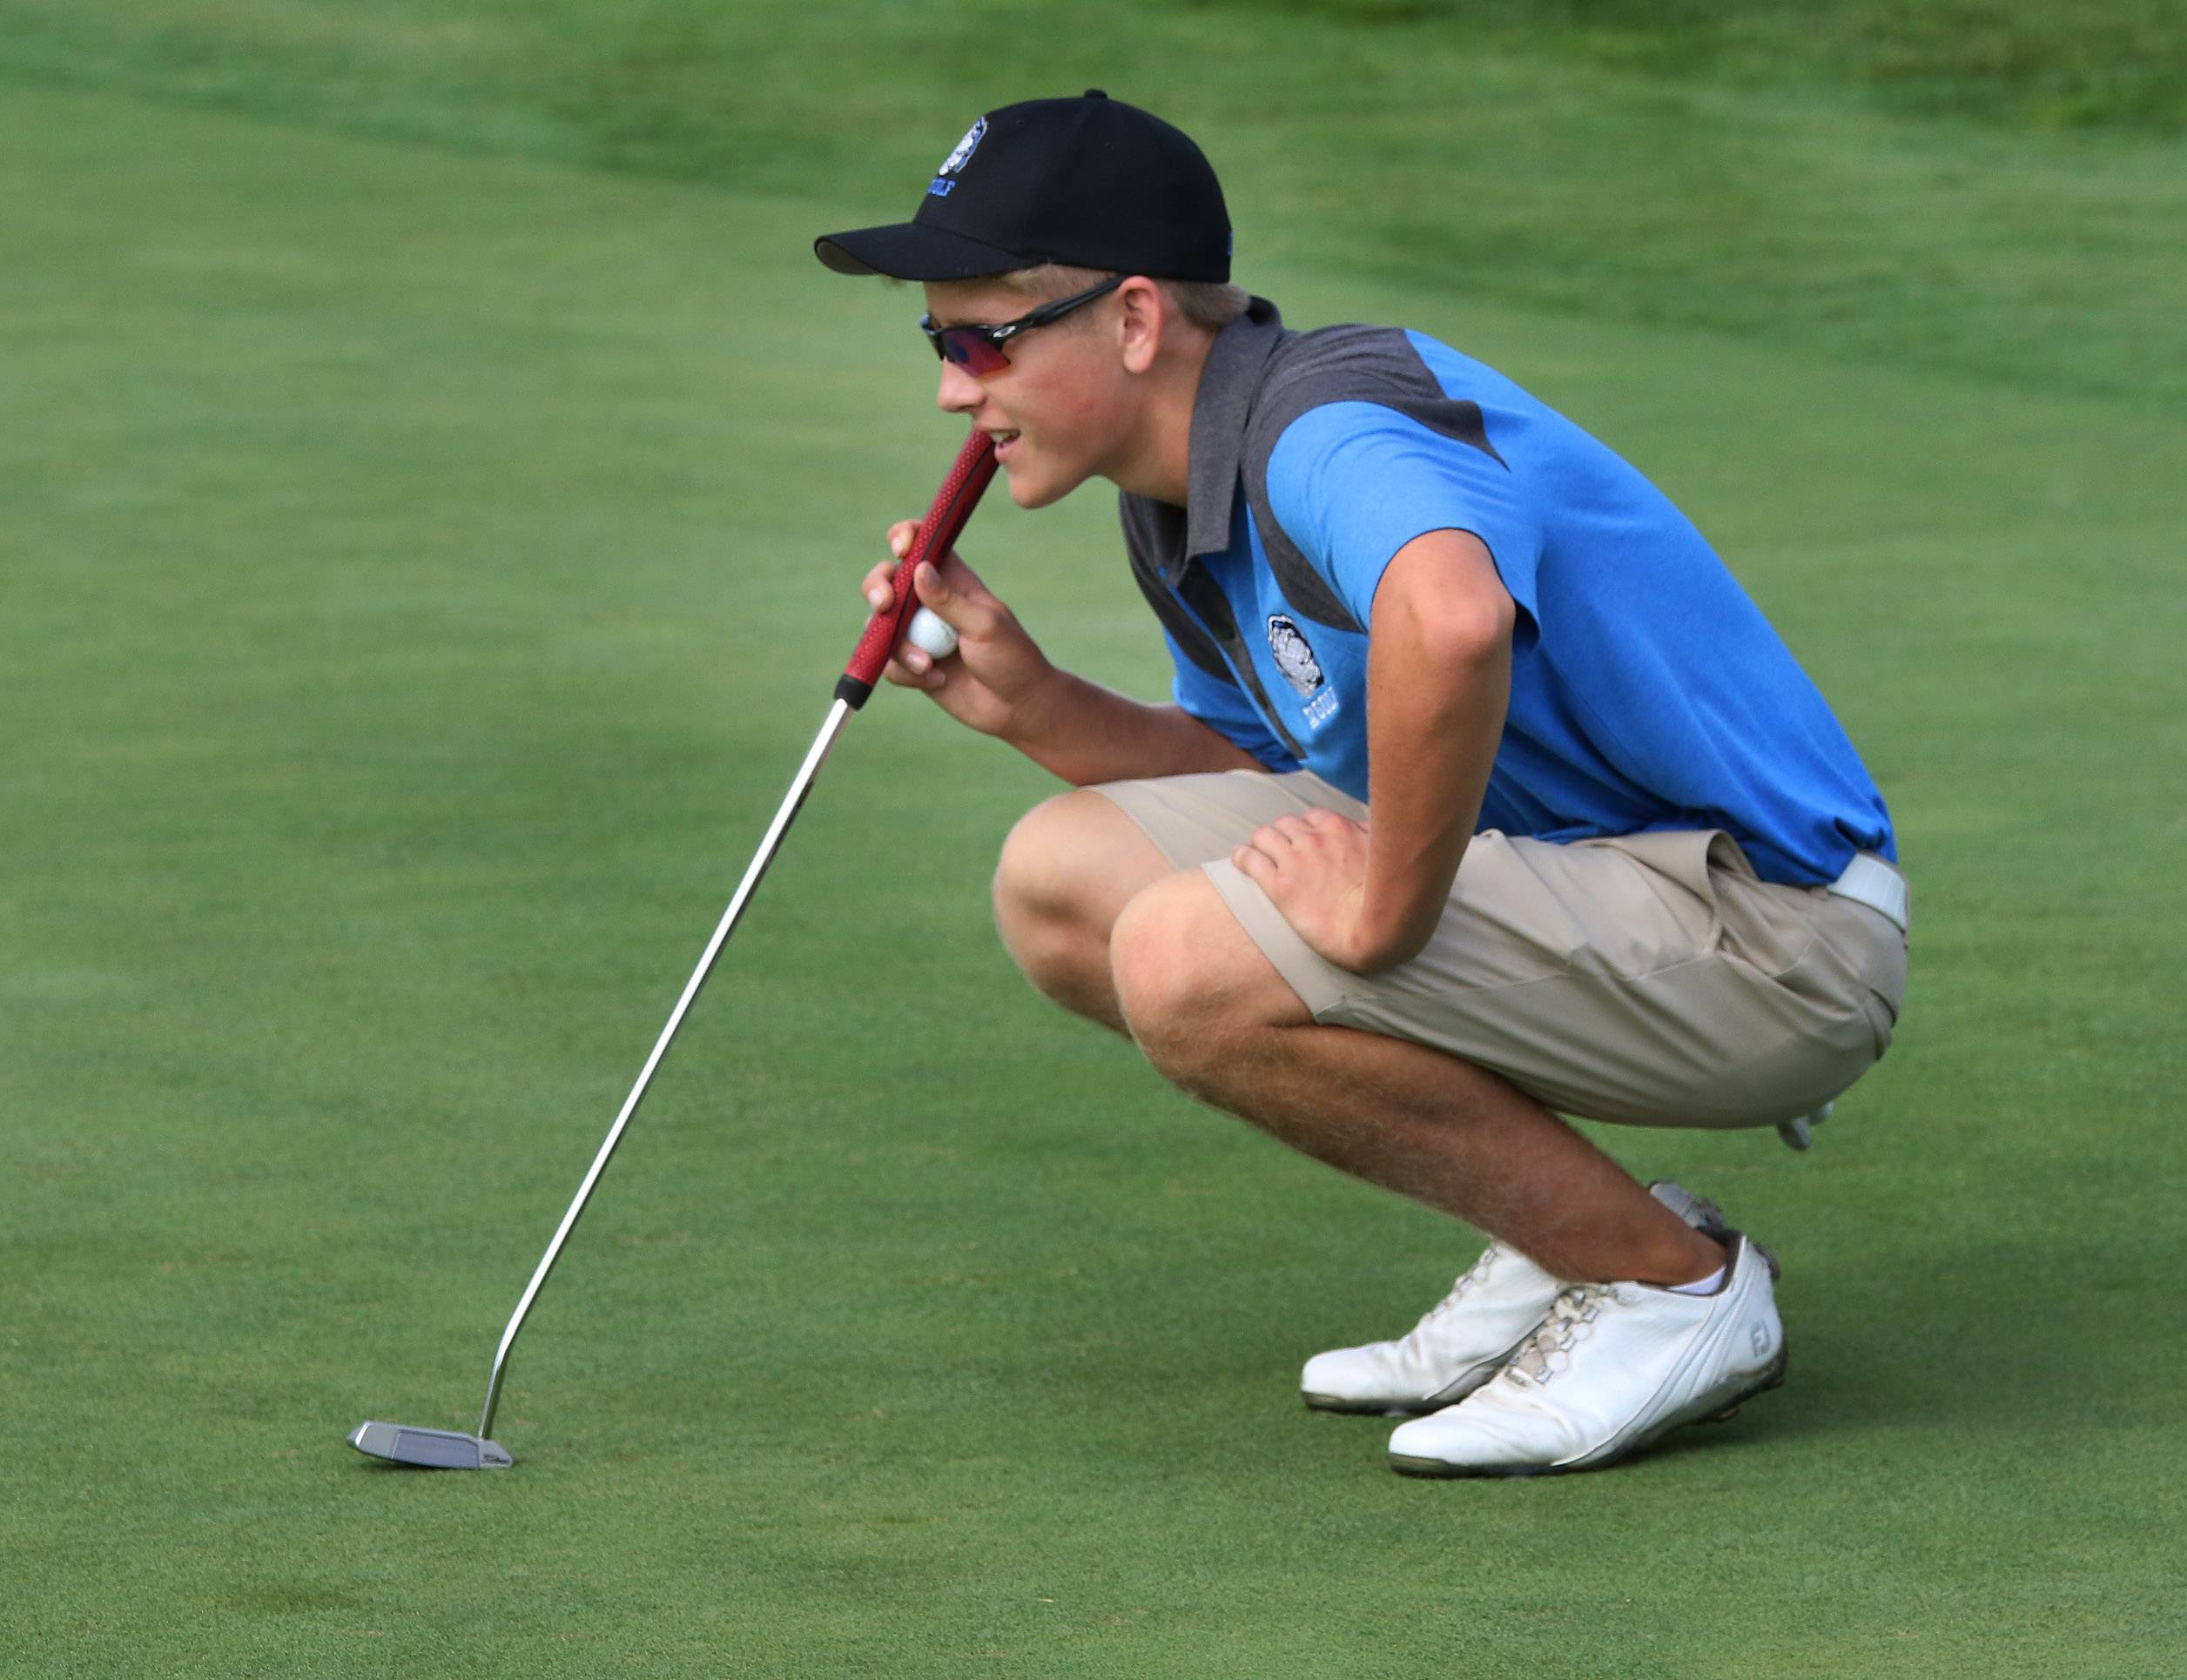 Lake Zurich's Konnor Kininmonth lines up his putt on the 14th hole during the North Suburban Conference tournament on Tuesday at Willow Glen Golf Course in North Chicago.